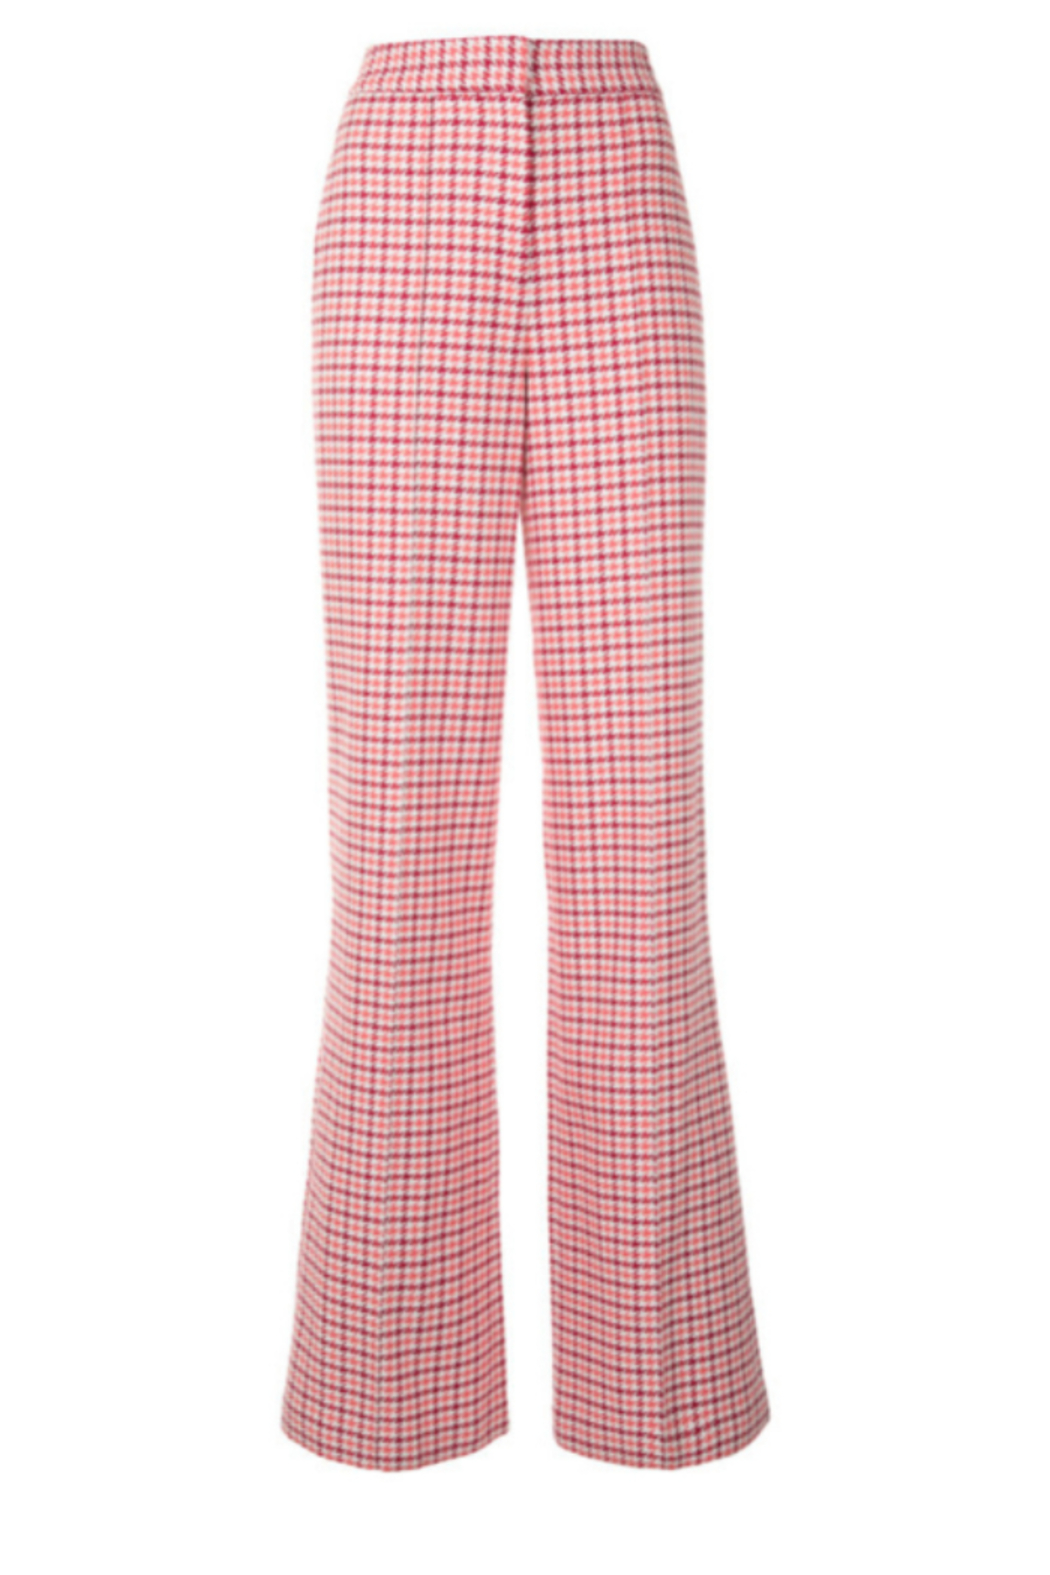 Adam Lippes WIDE LEG TROUSER - Main Image